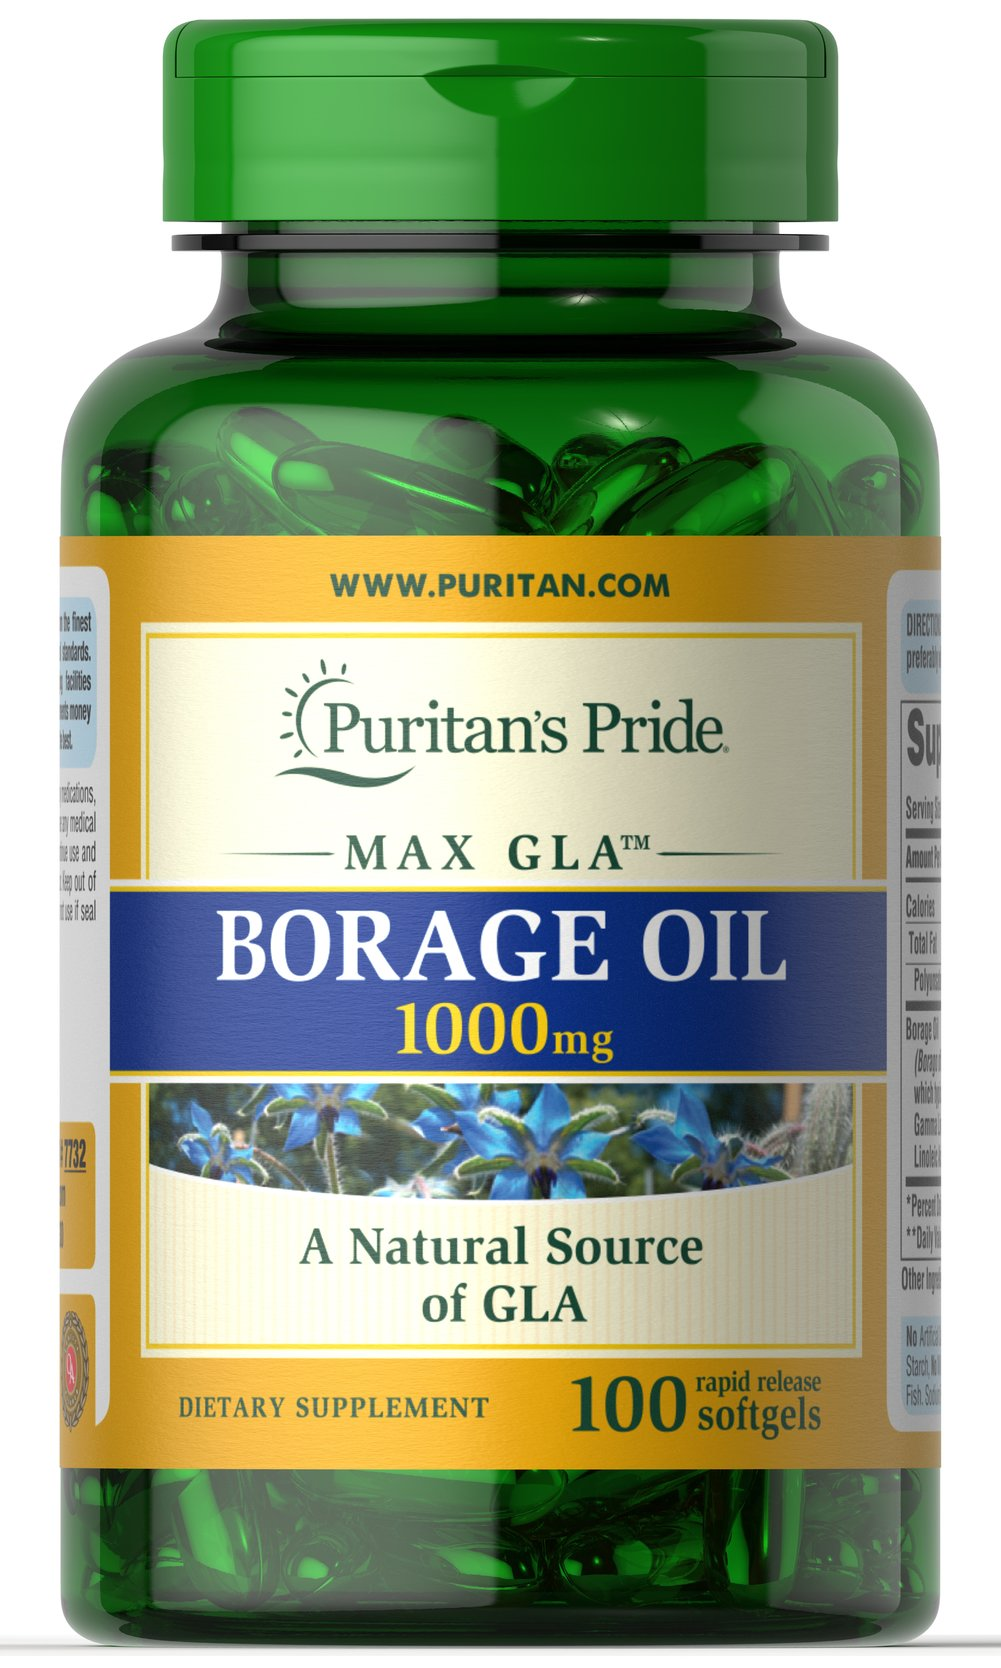 borage oil 1000 mg 100 softgels | lifestyle - women's supplements, Skeleton